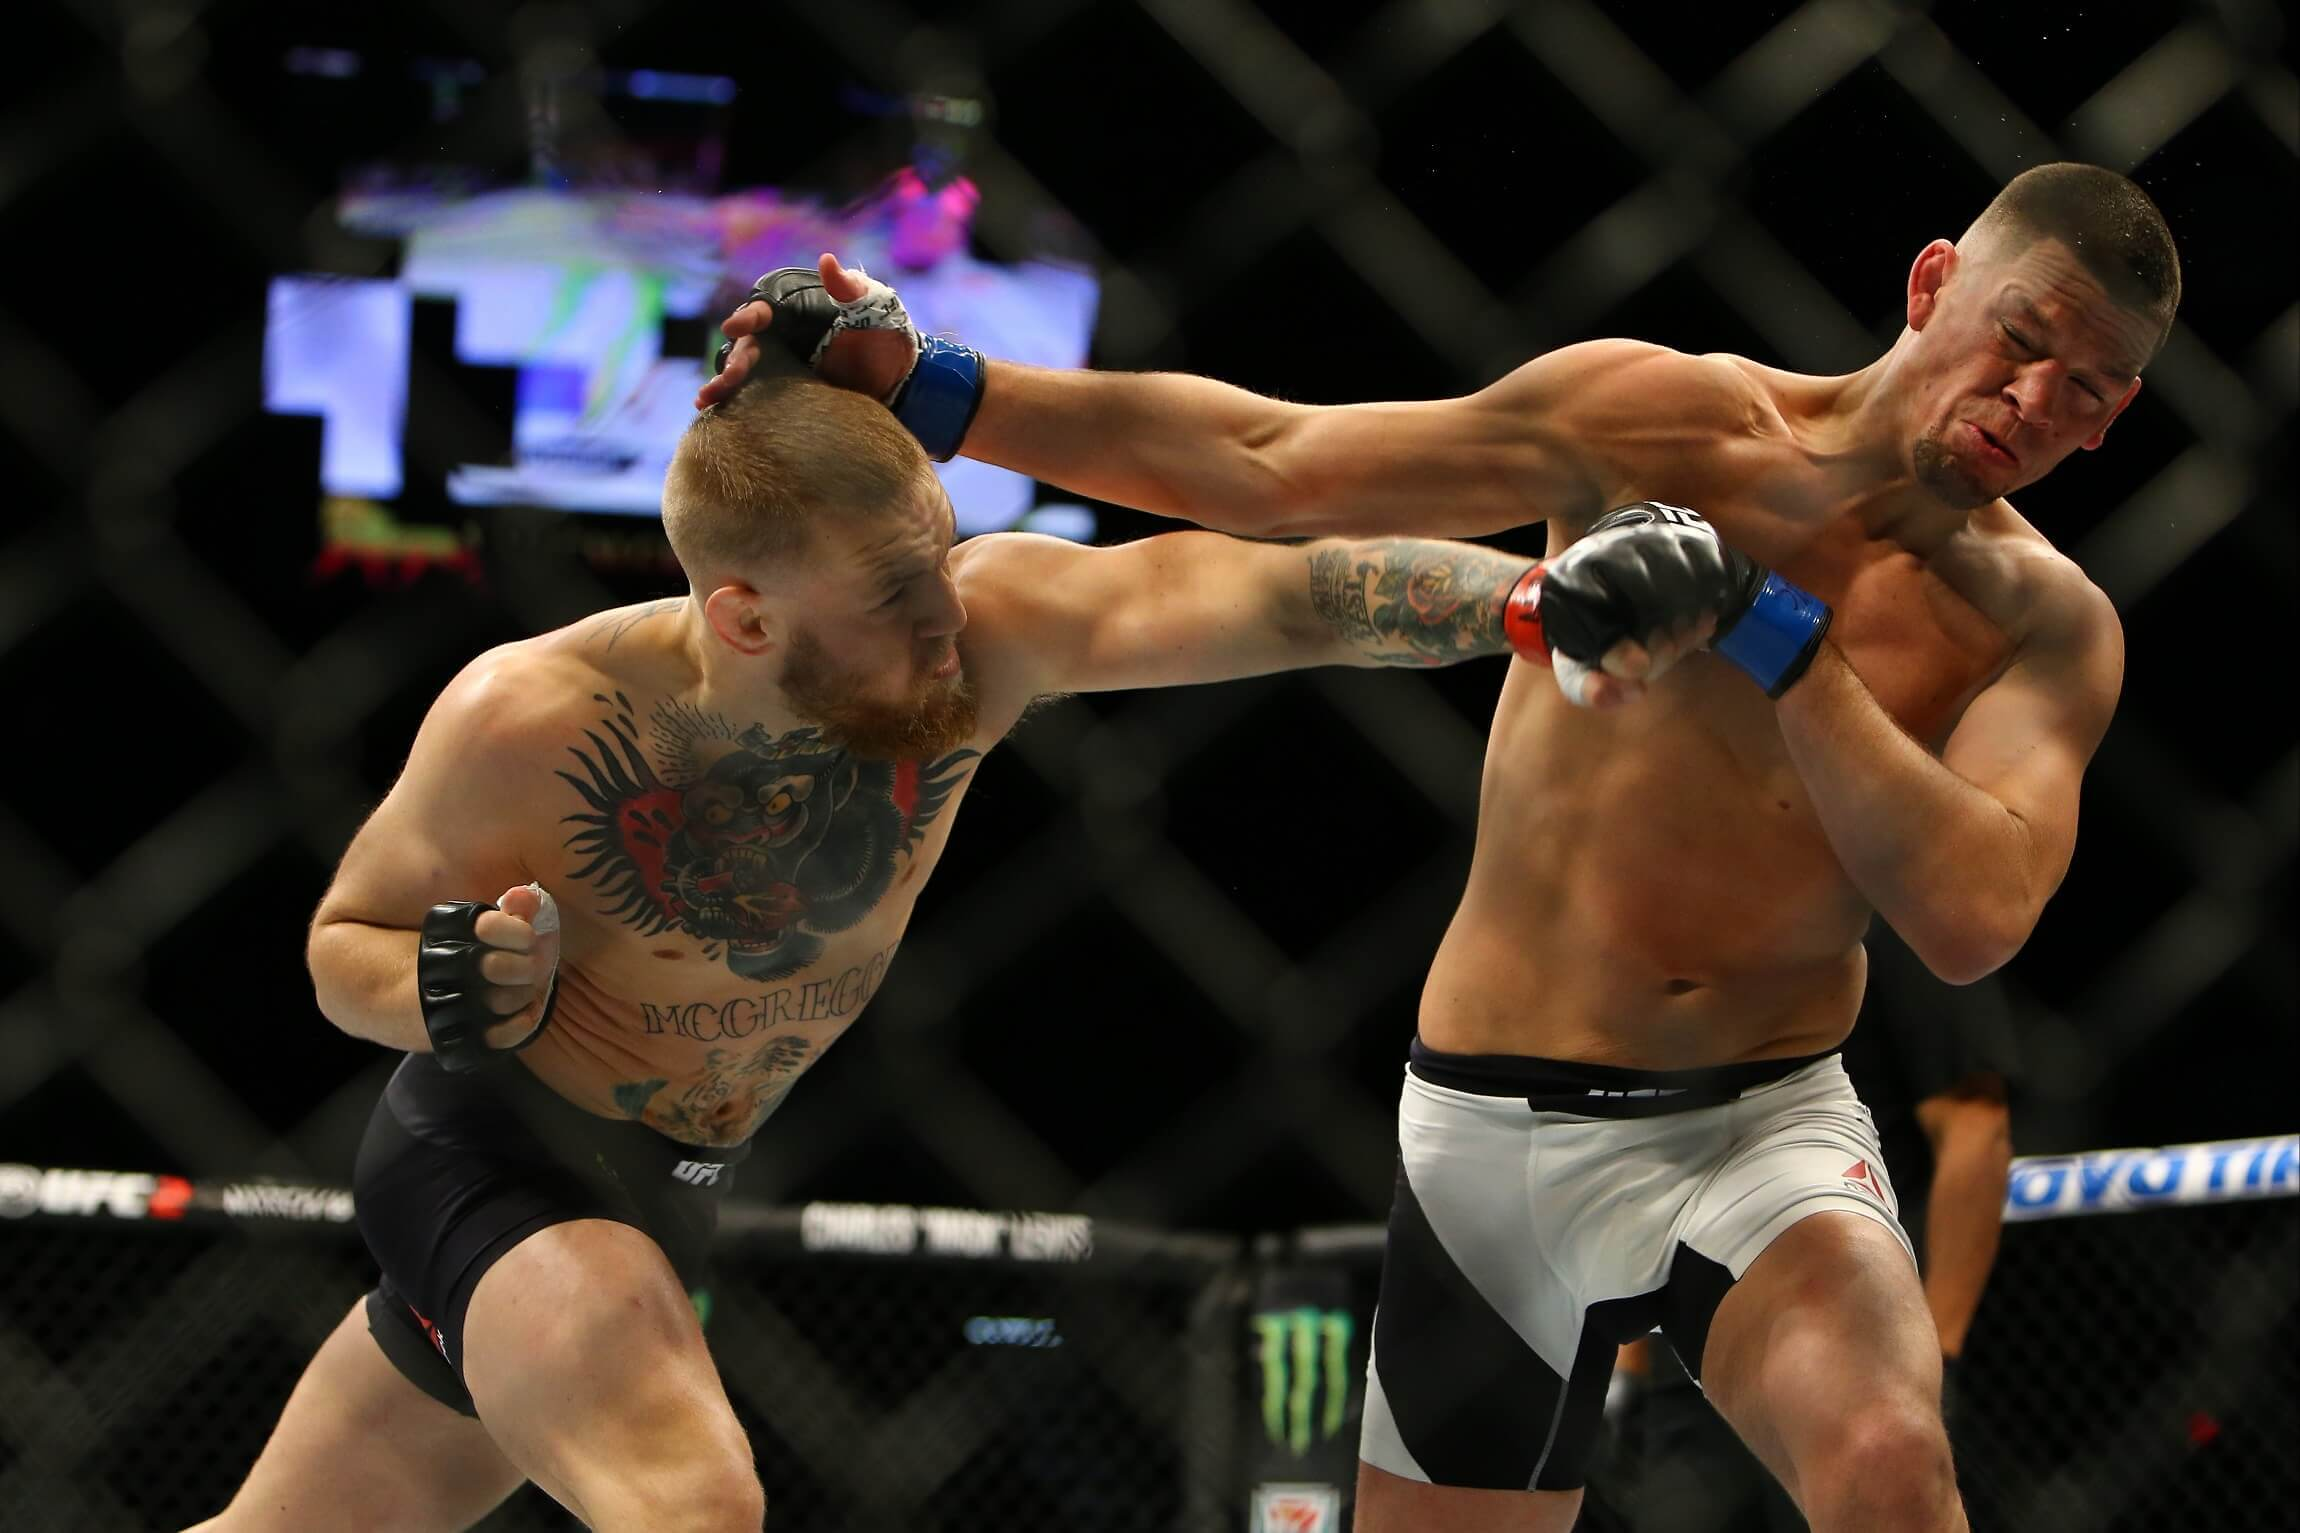 UFC 202 Odds: Conor McGregor vs. Nate Diaz II